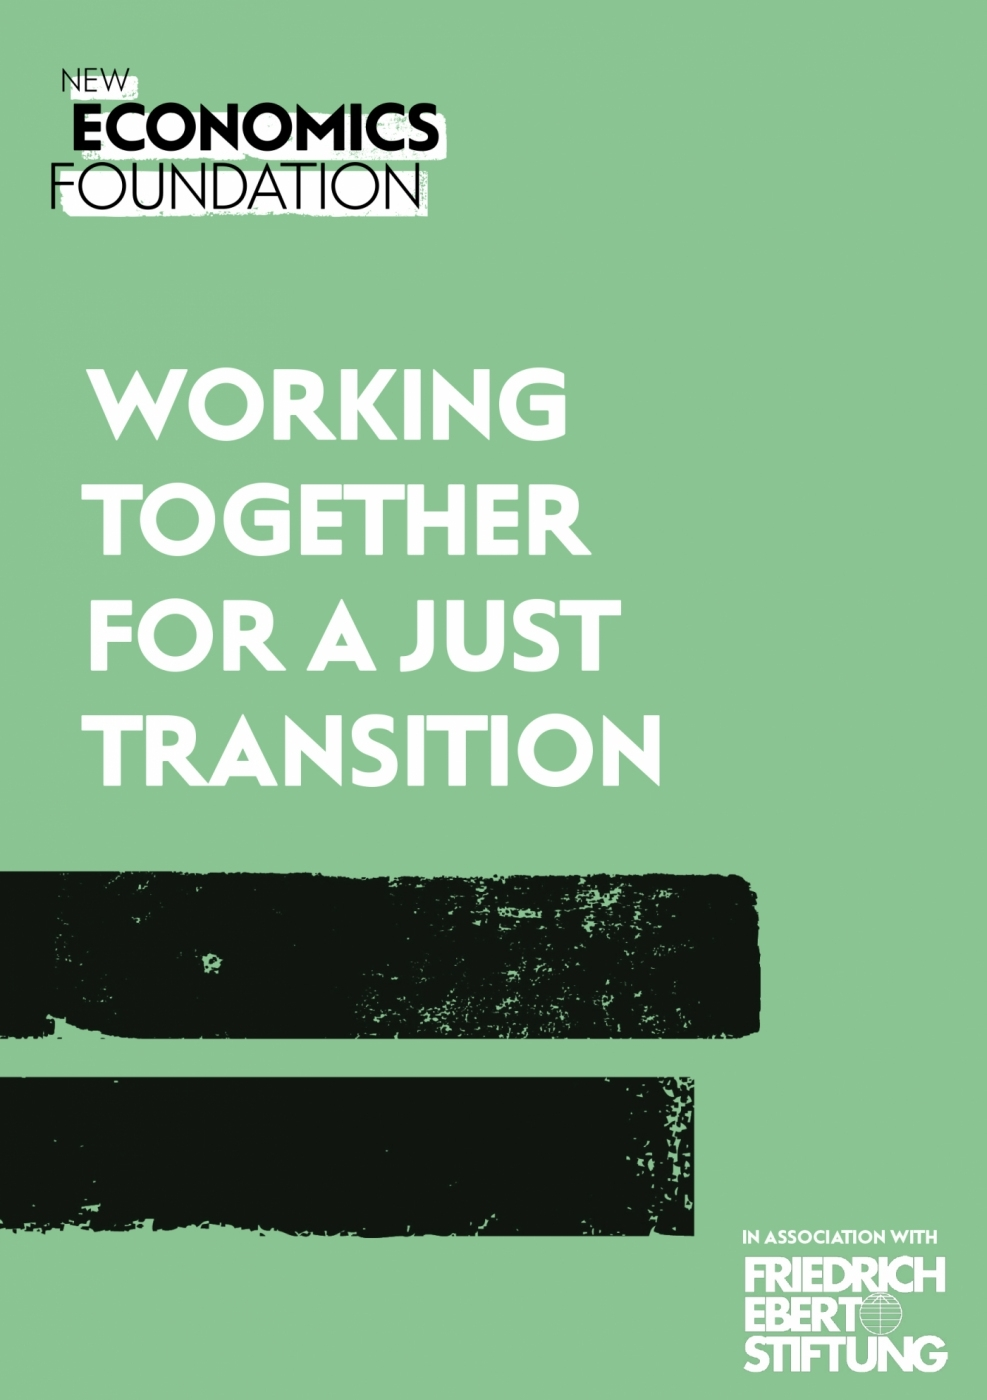 Working together for a just transition